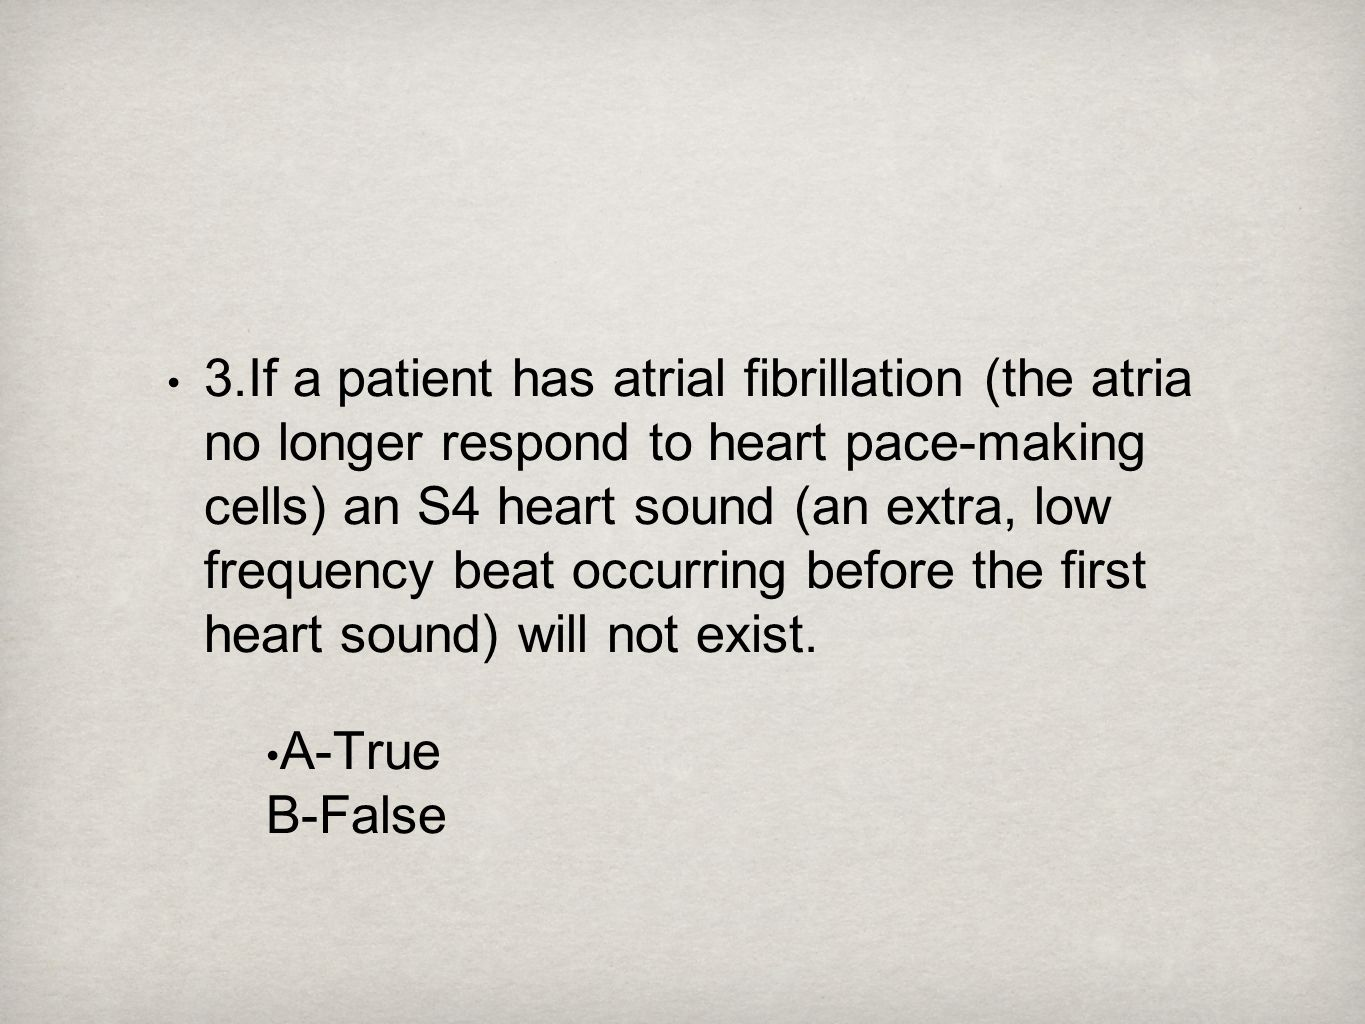 3.If a patient has atrial fibrillation (the atria no longer respond to heart pace-making cells) an S4 heart sound (an extra, low frequency beat occurring before the first heart sound) will not exist.